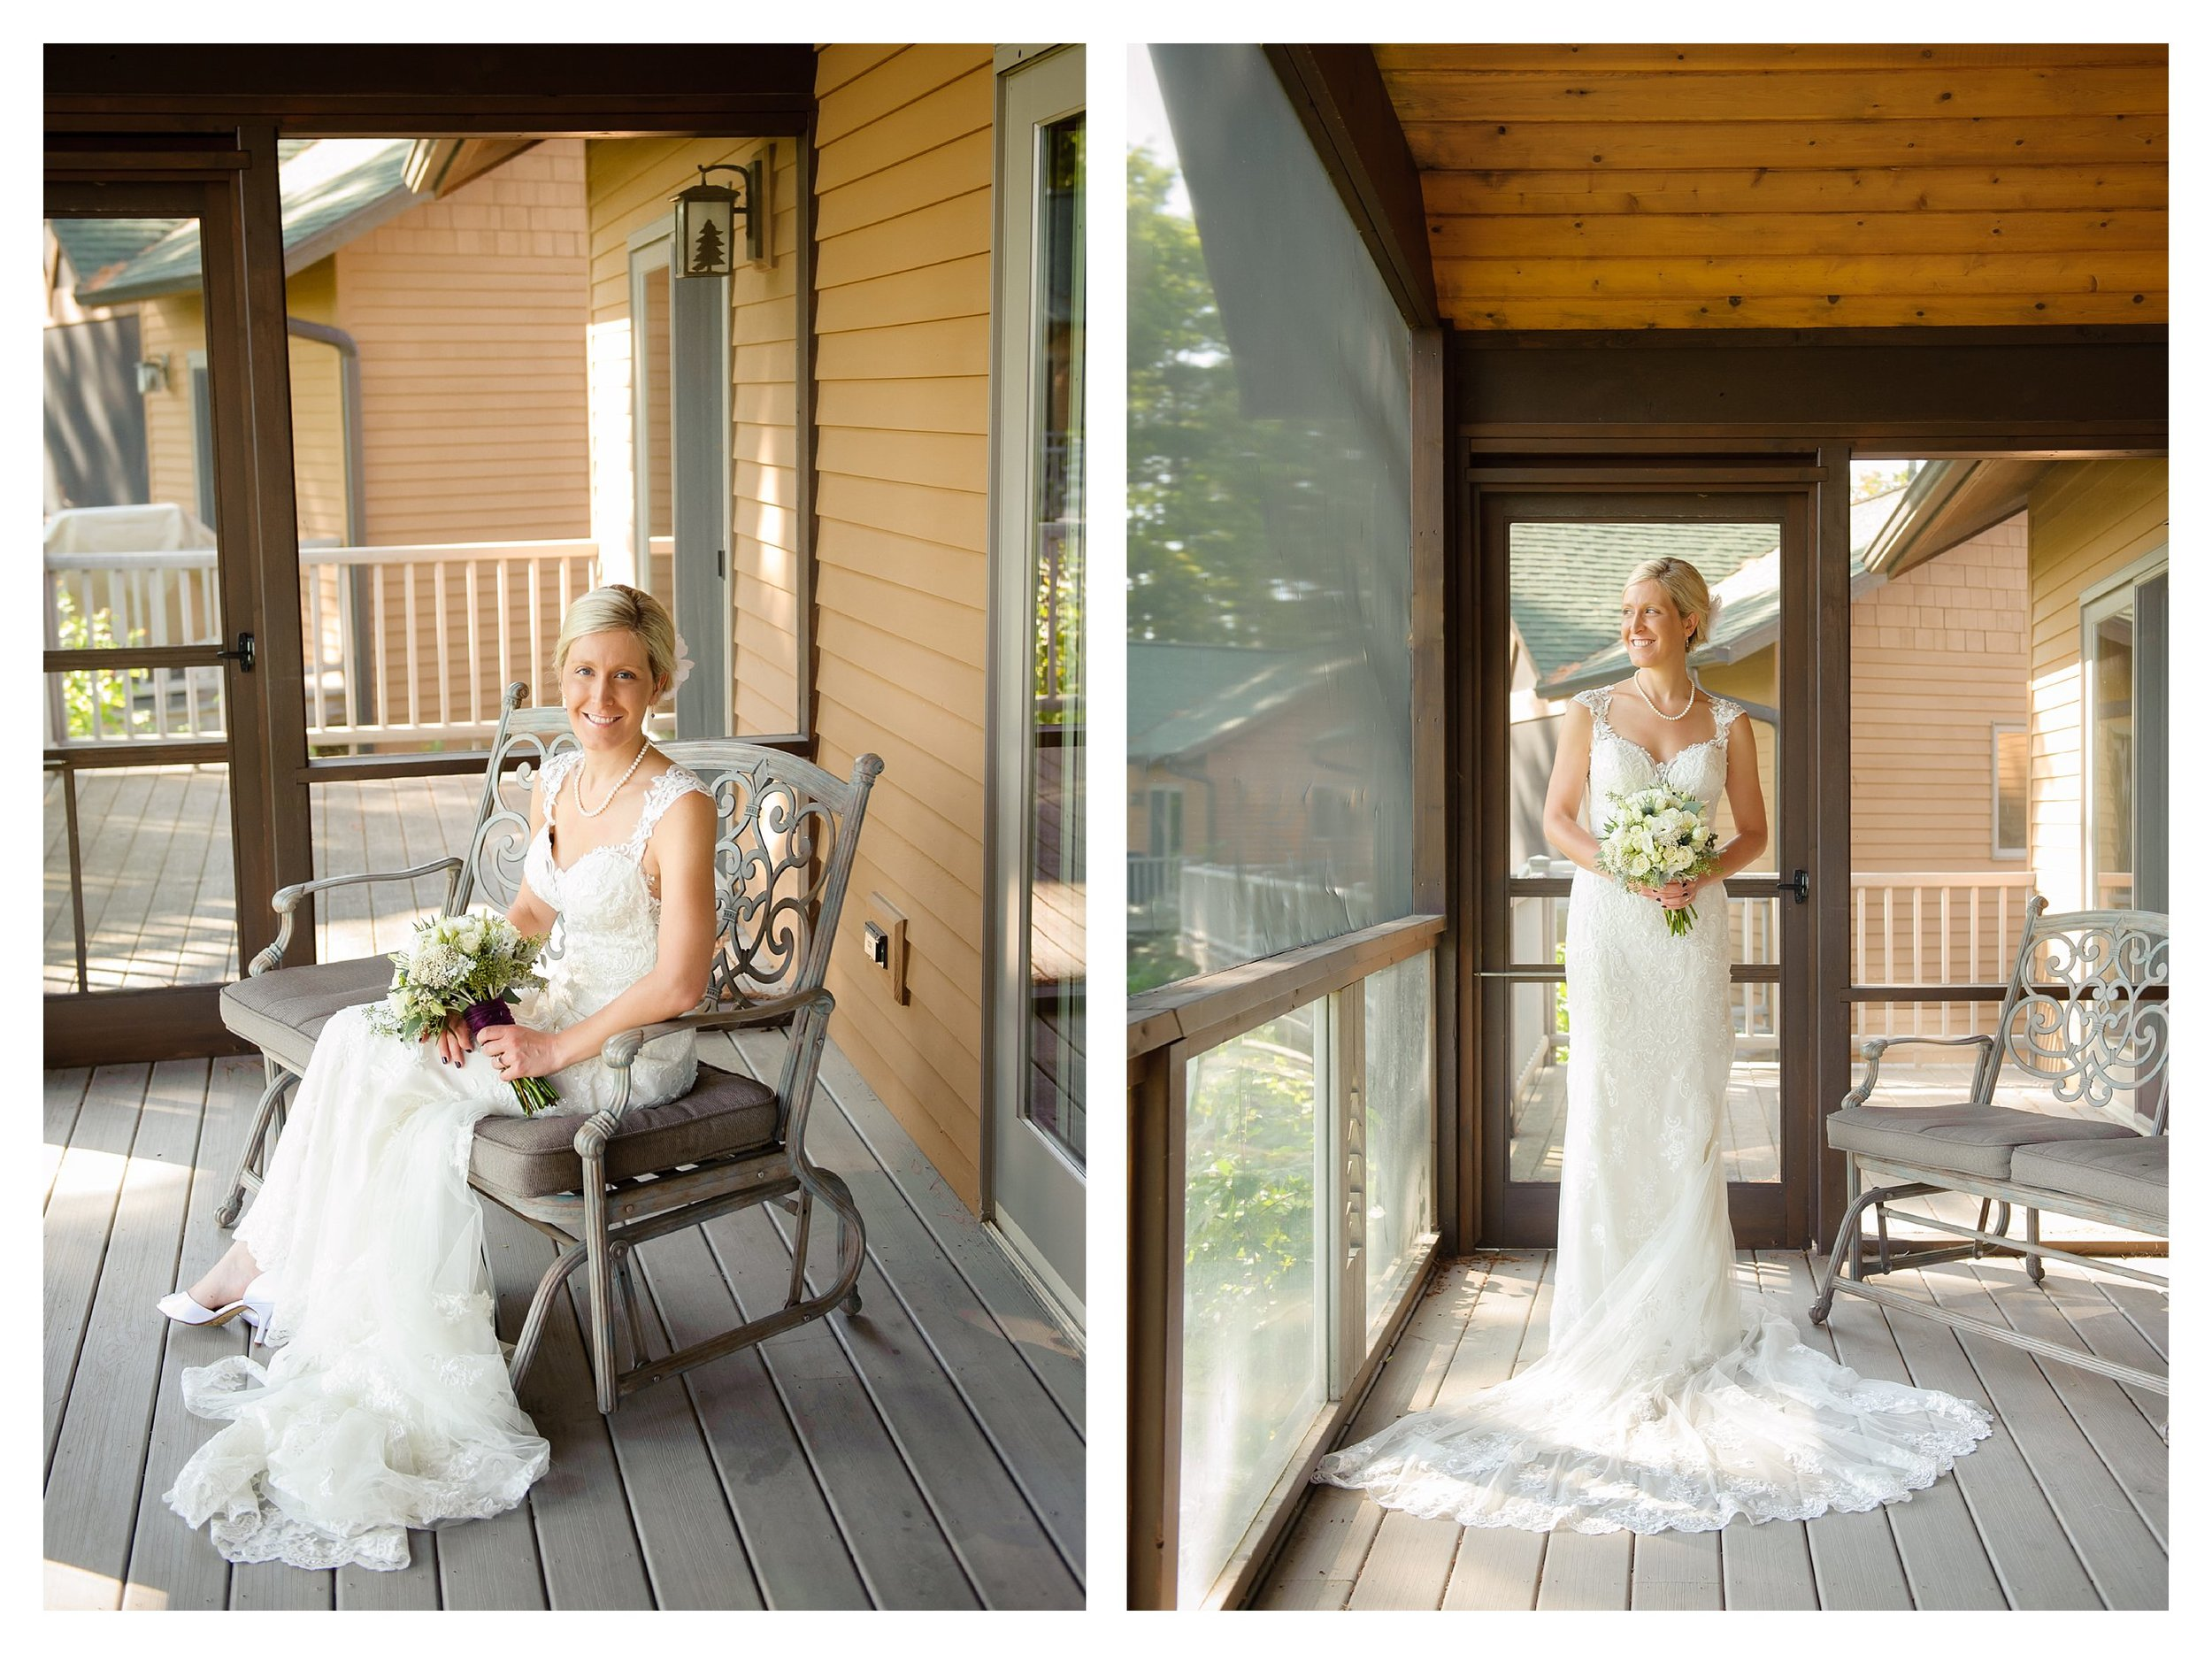 Lindstrom MN Twin cities Minnesota northwoods Bayfield wisconsin destination wedding ps 139 photography_0442.jpg